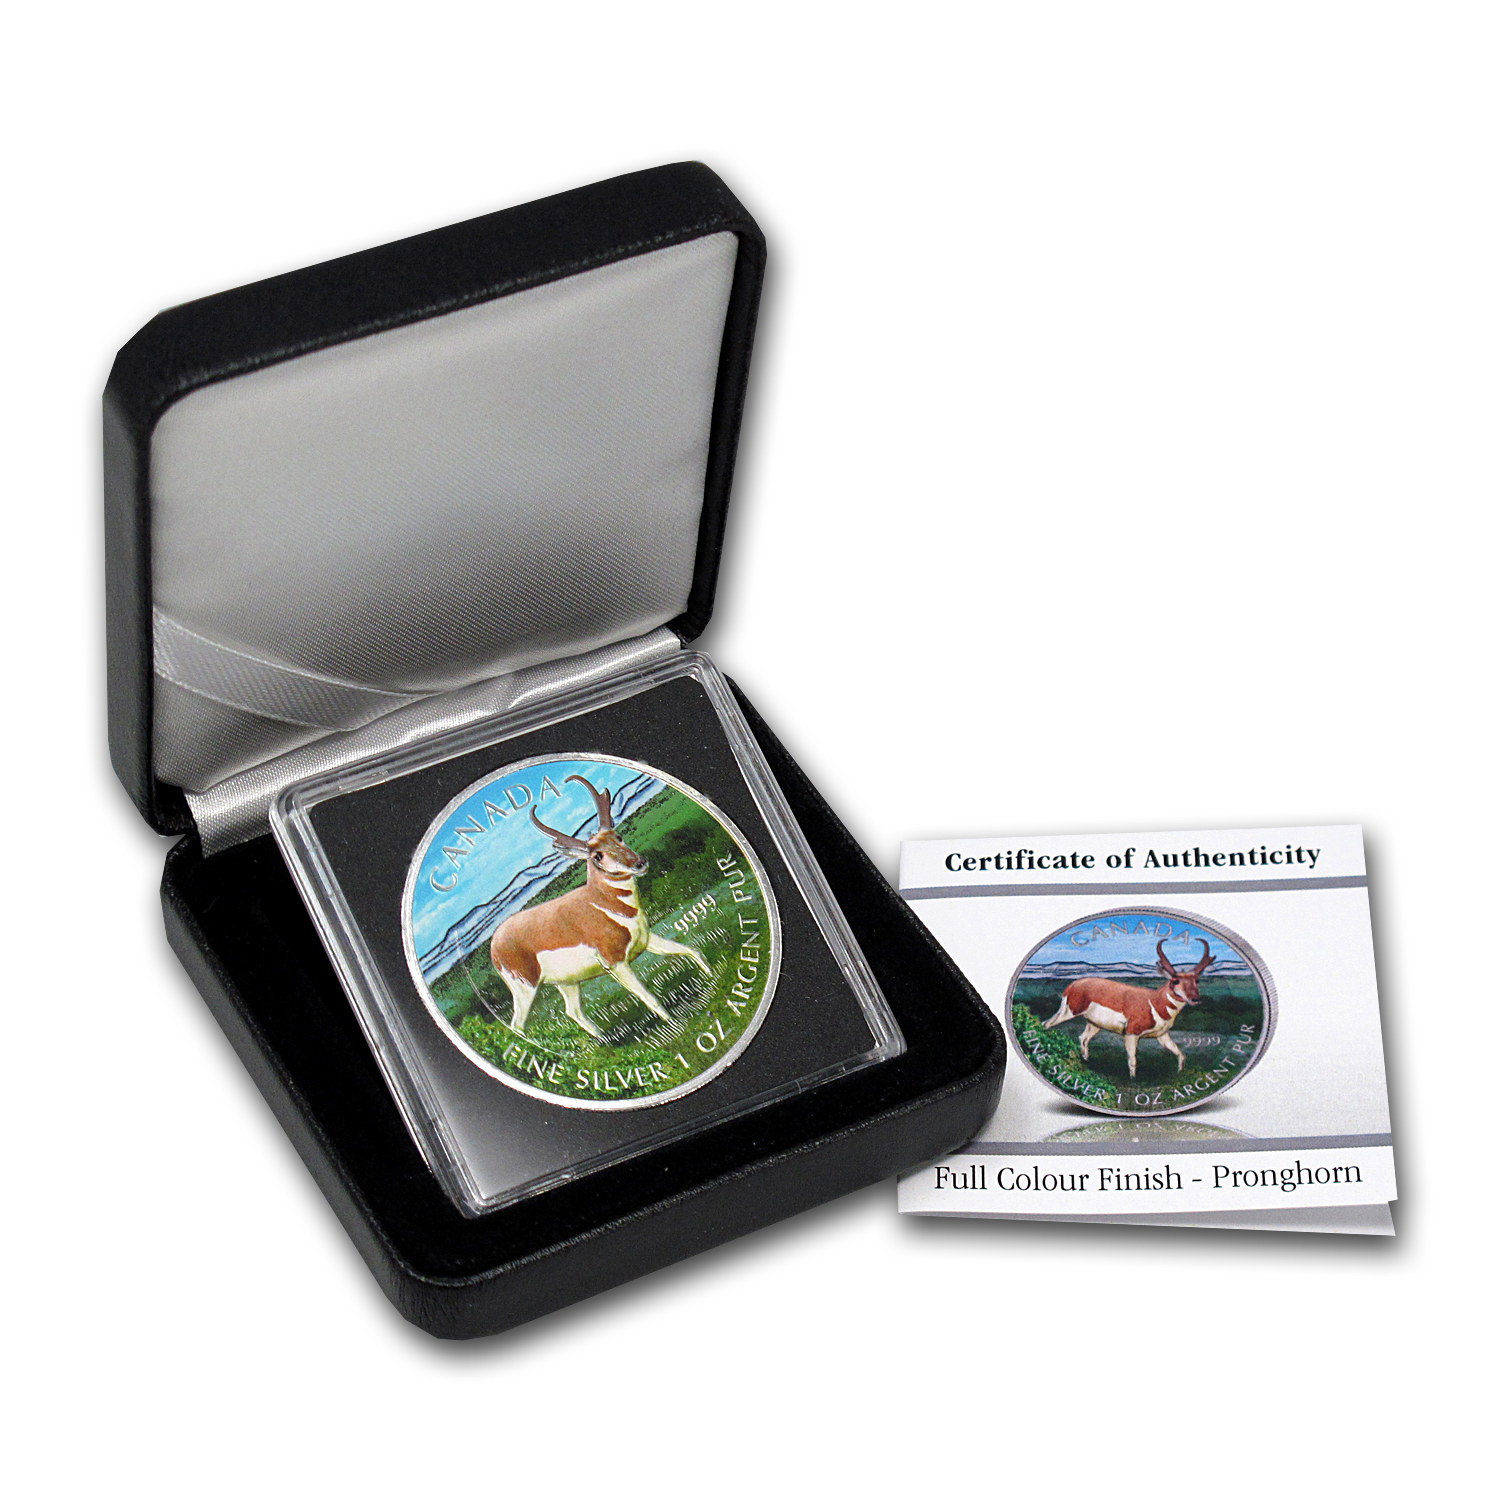 2013 1 oz Silver Canadian Wildlife Series Antelope (Full Color)